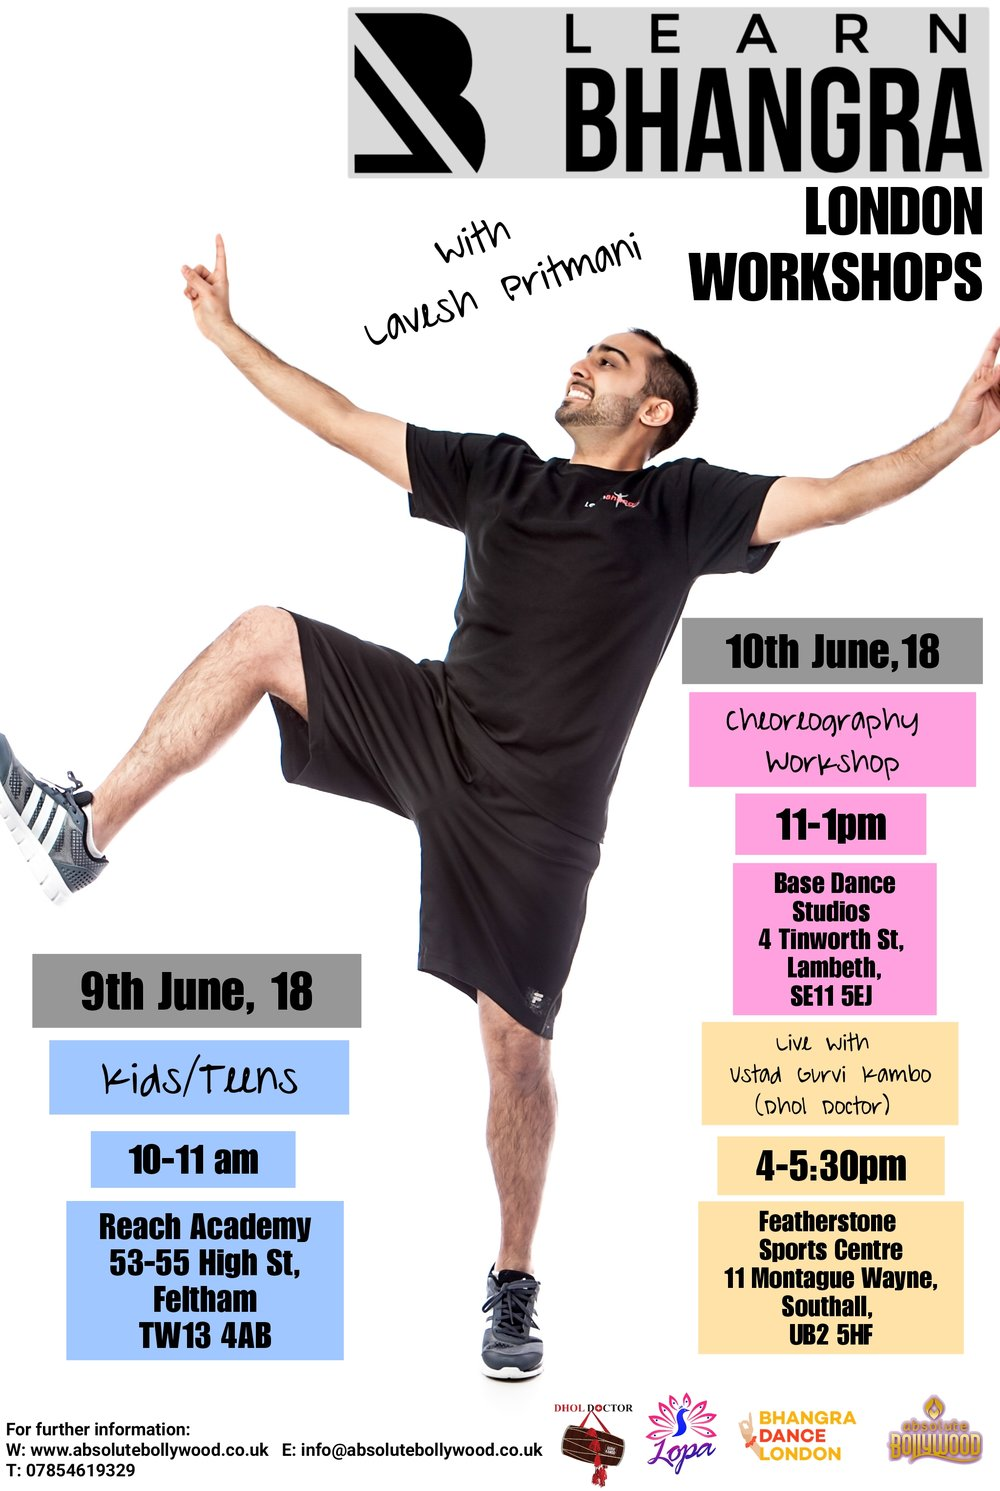 London Workshop Flyer.jpg